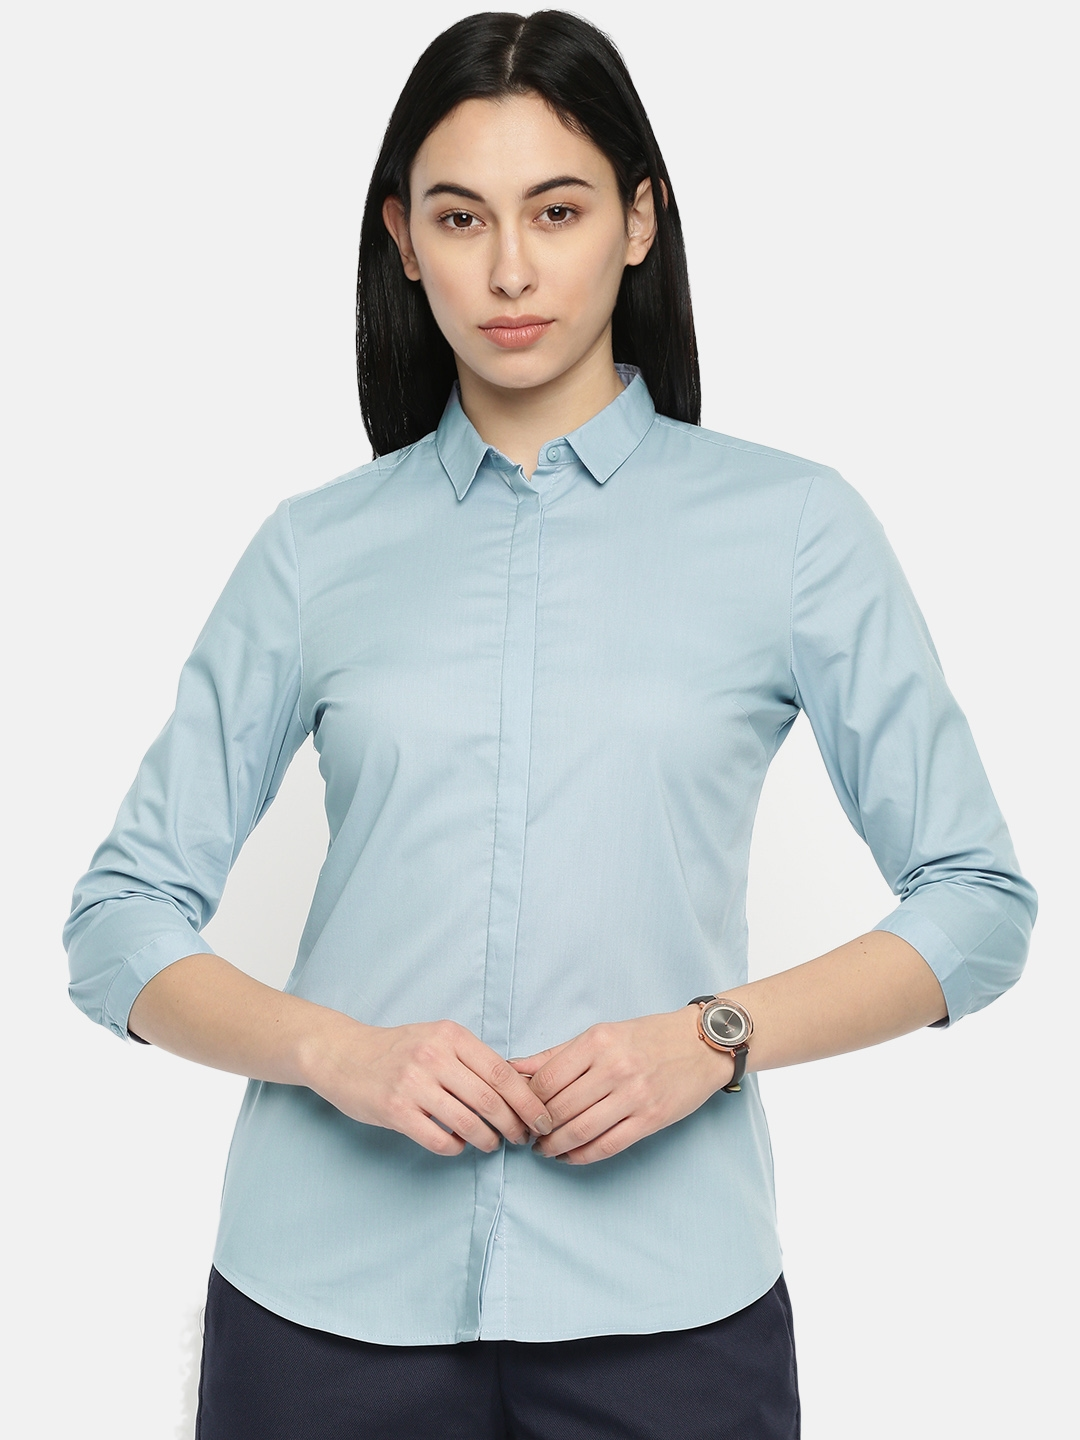 Van Heusen Woman Women Blue Regular Fit Solid Formal Shirt